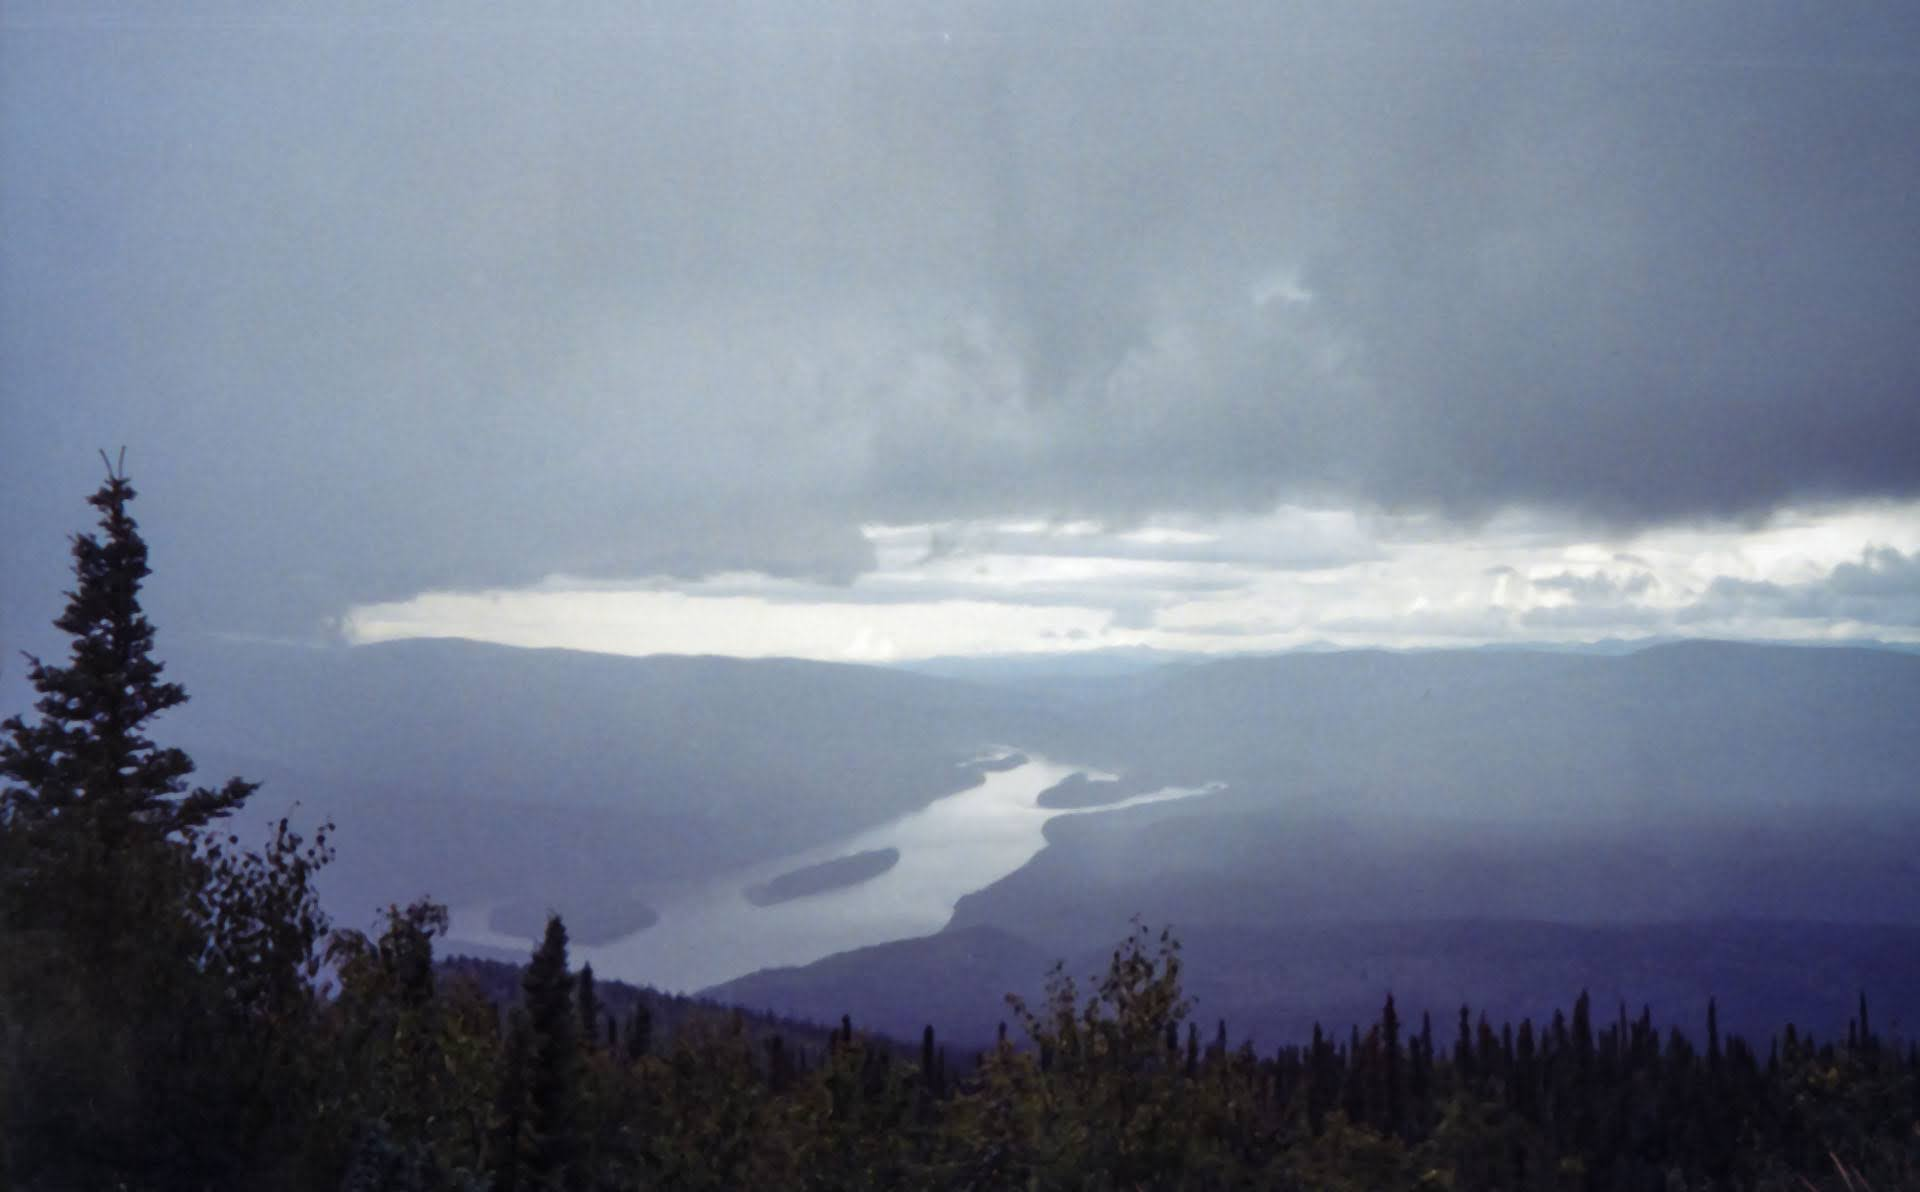 A view of the yukon river from high above at the top of midnight dome. It's a stormy and cloudy day and the river is flowing between forested hills. There are trees in the foreground. Driving or hiking to the summit of midnight dome is a popular thing to do in dawson city